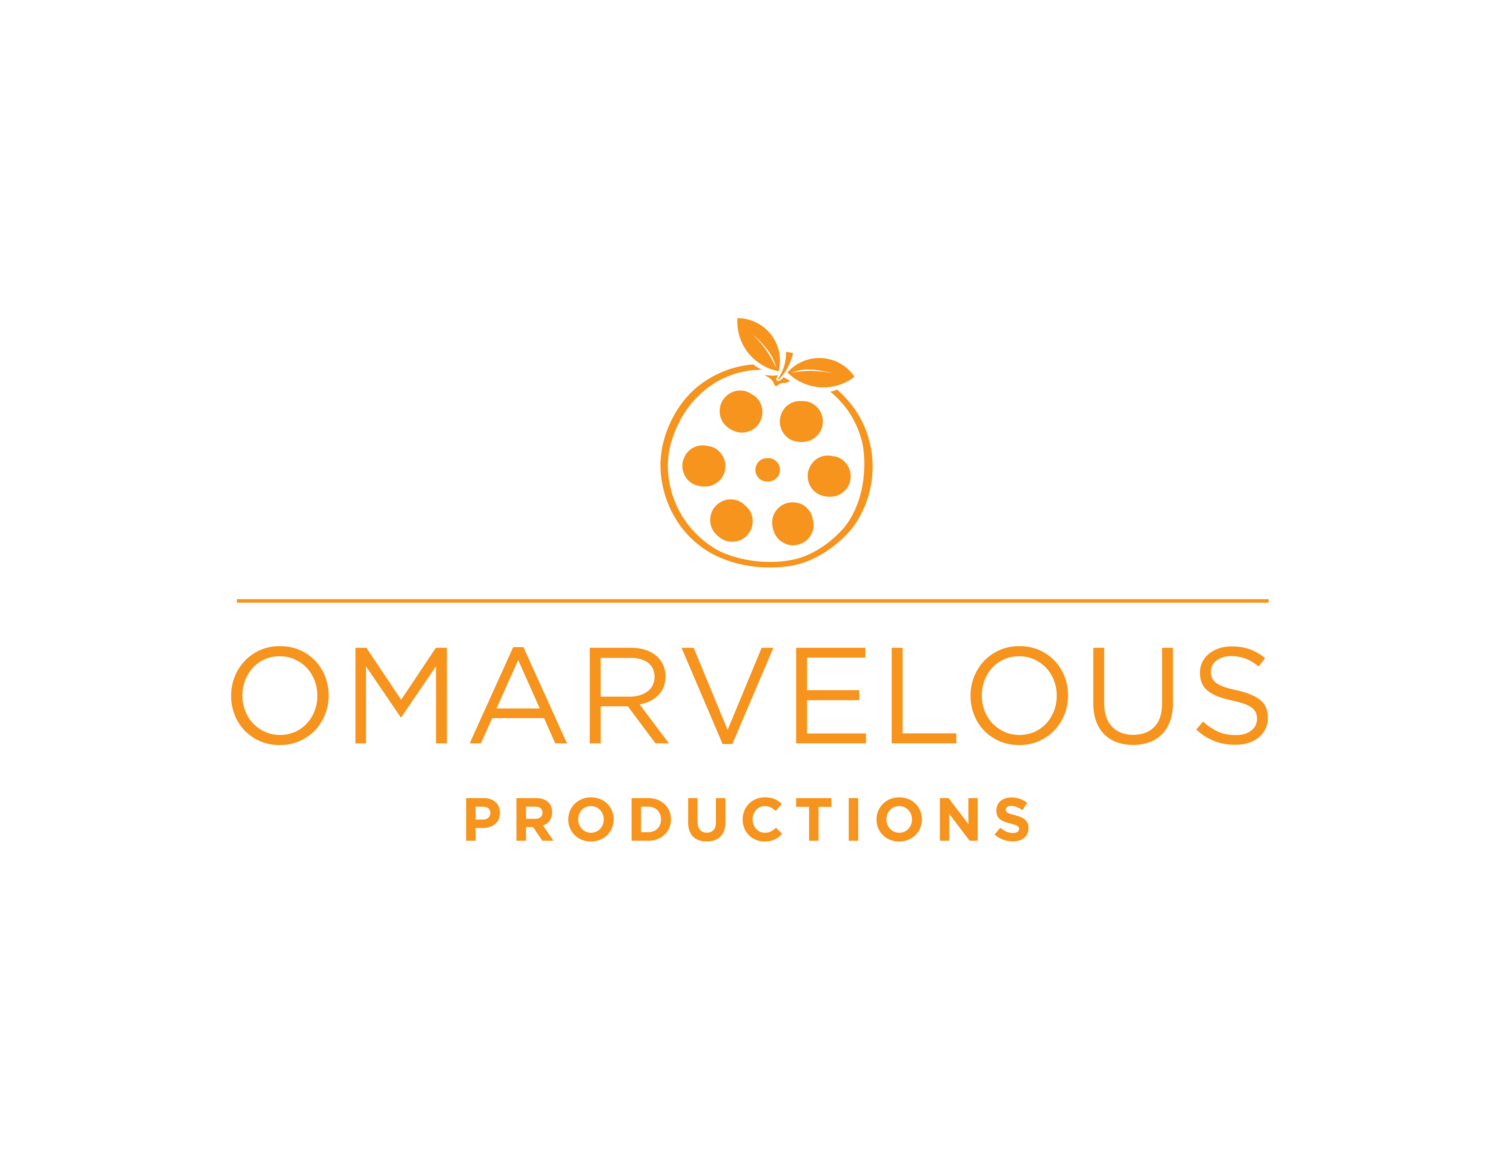 Omarvelous Productions LLC